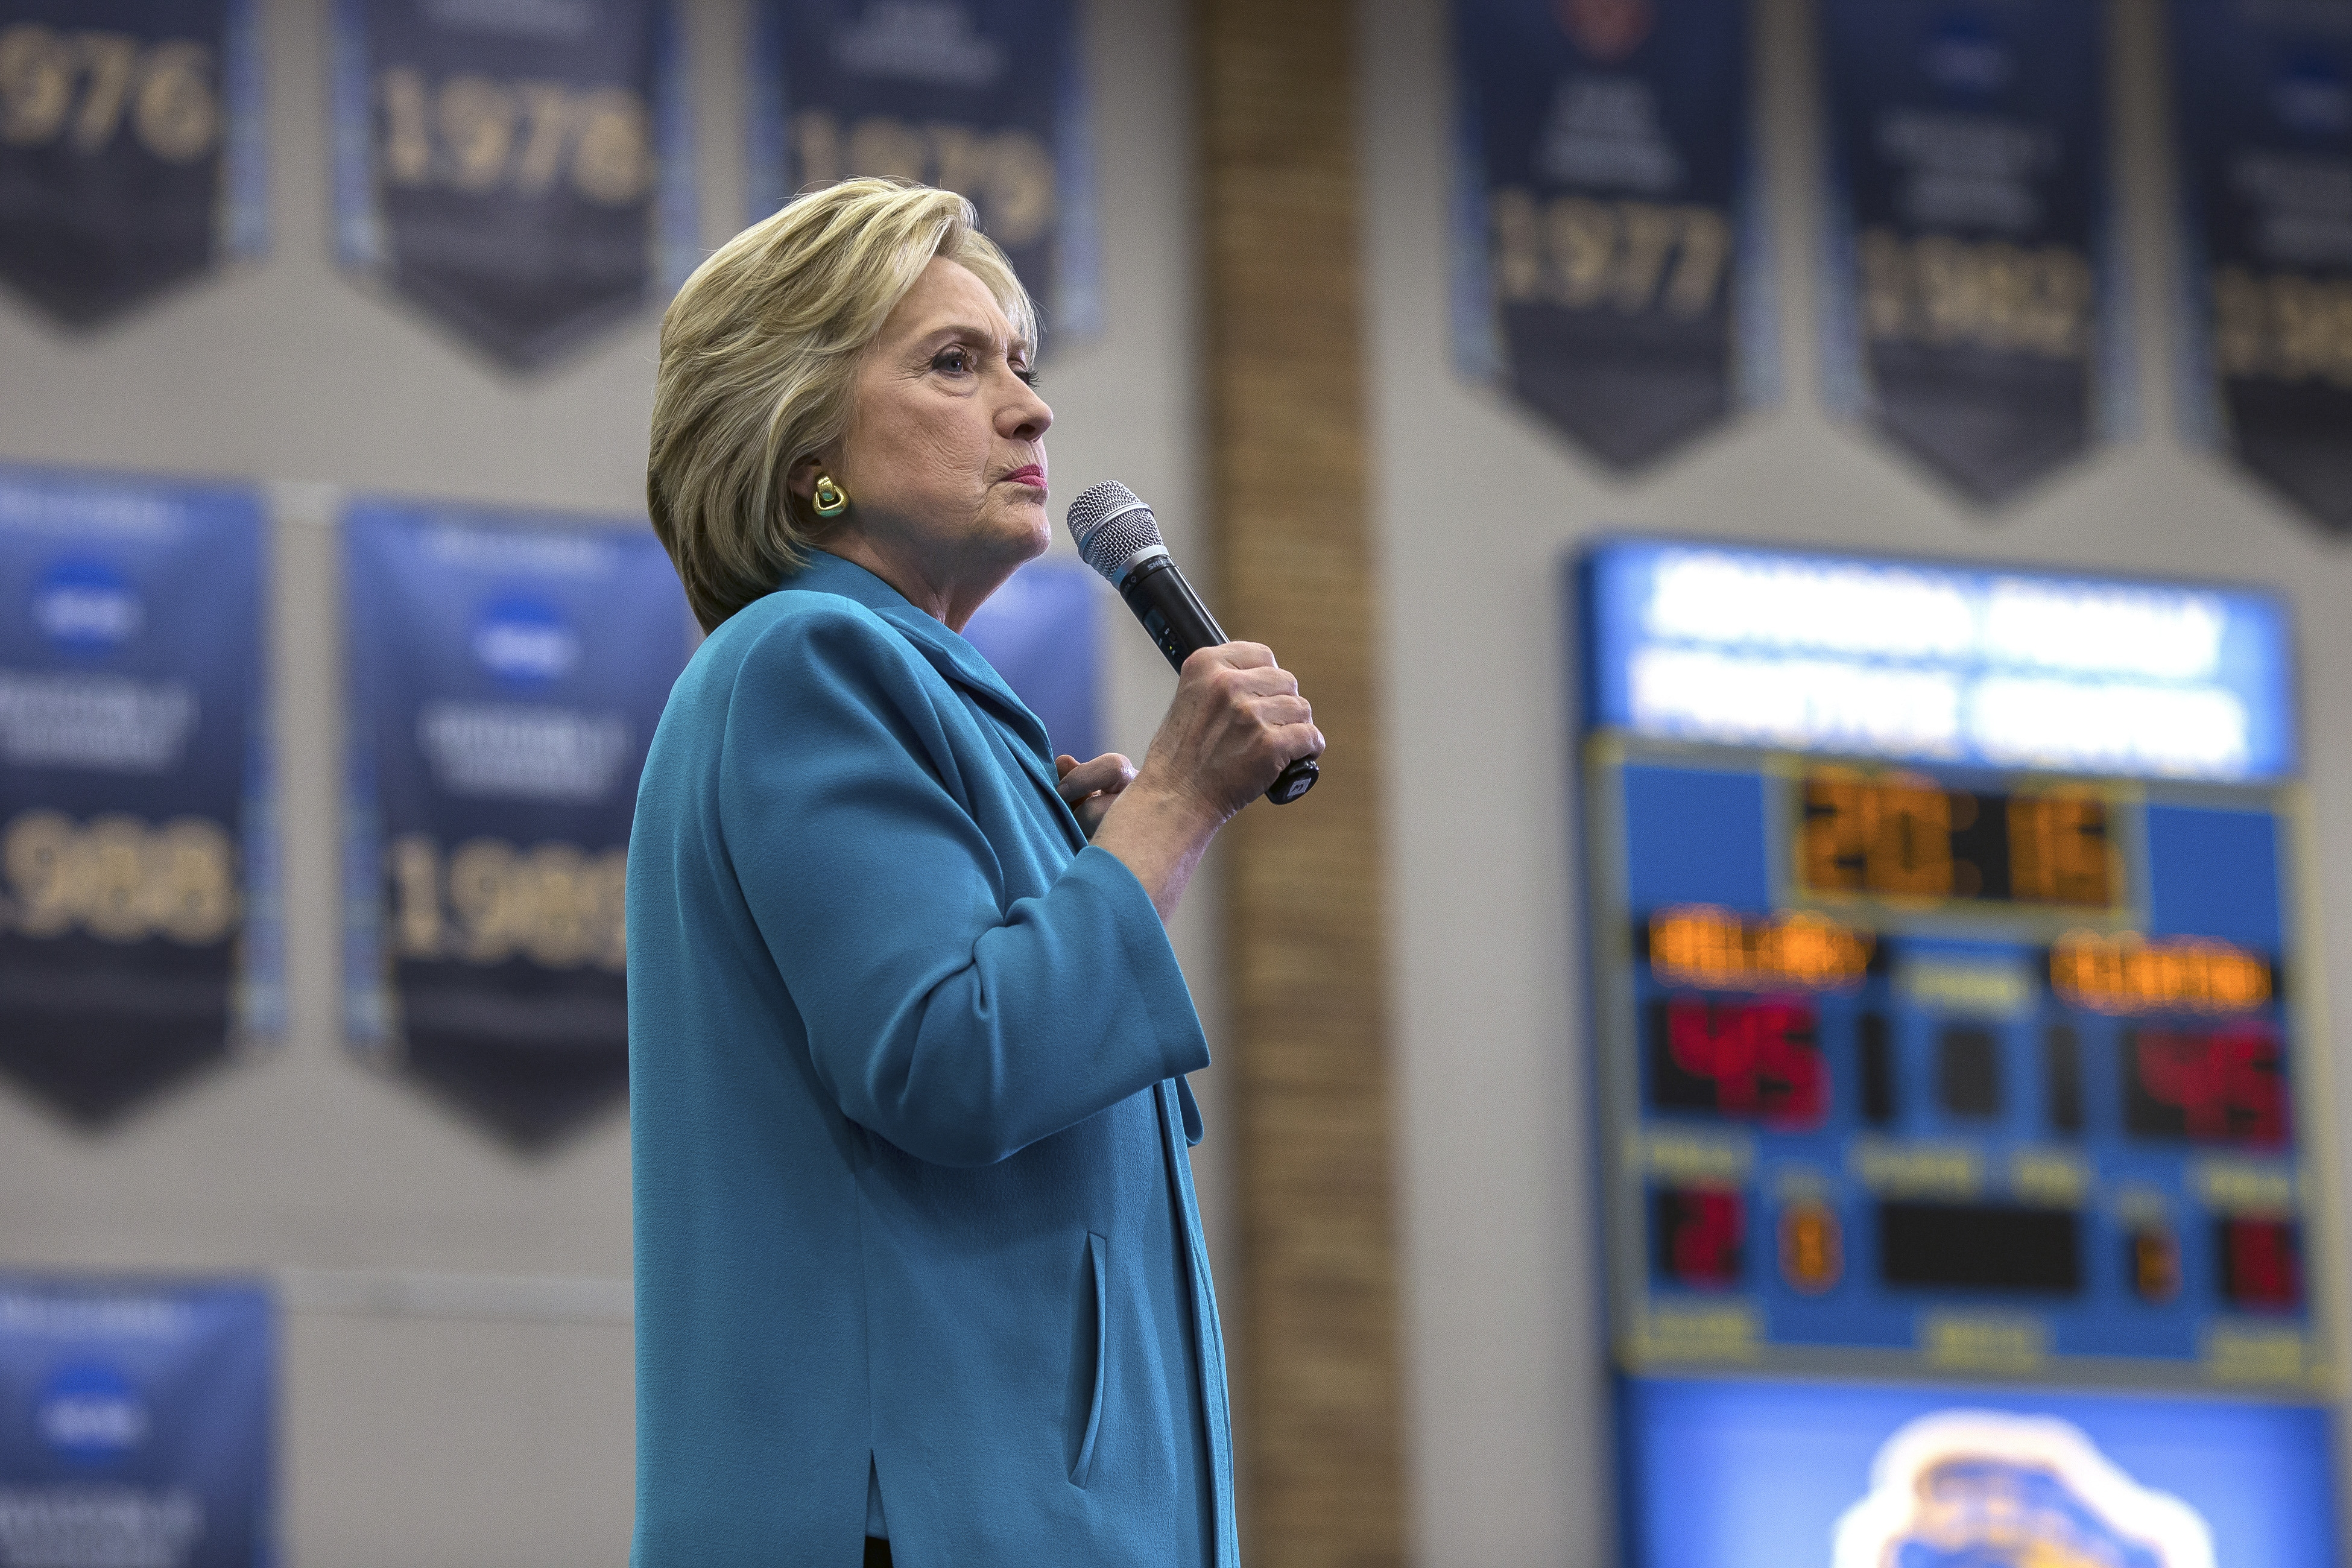 Despite a quarter-century in national politics, Hillary Clinton was unable to see how damaging revelations about her email server would be. (New York Times file photo)